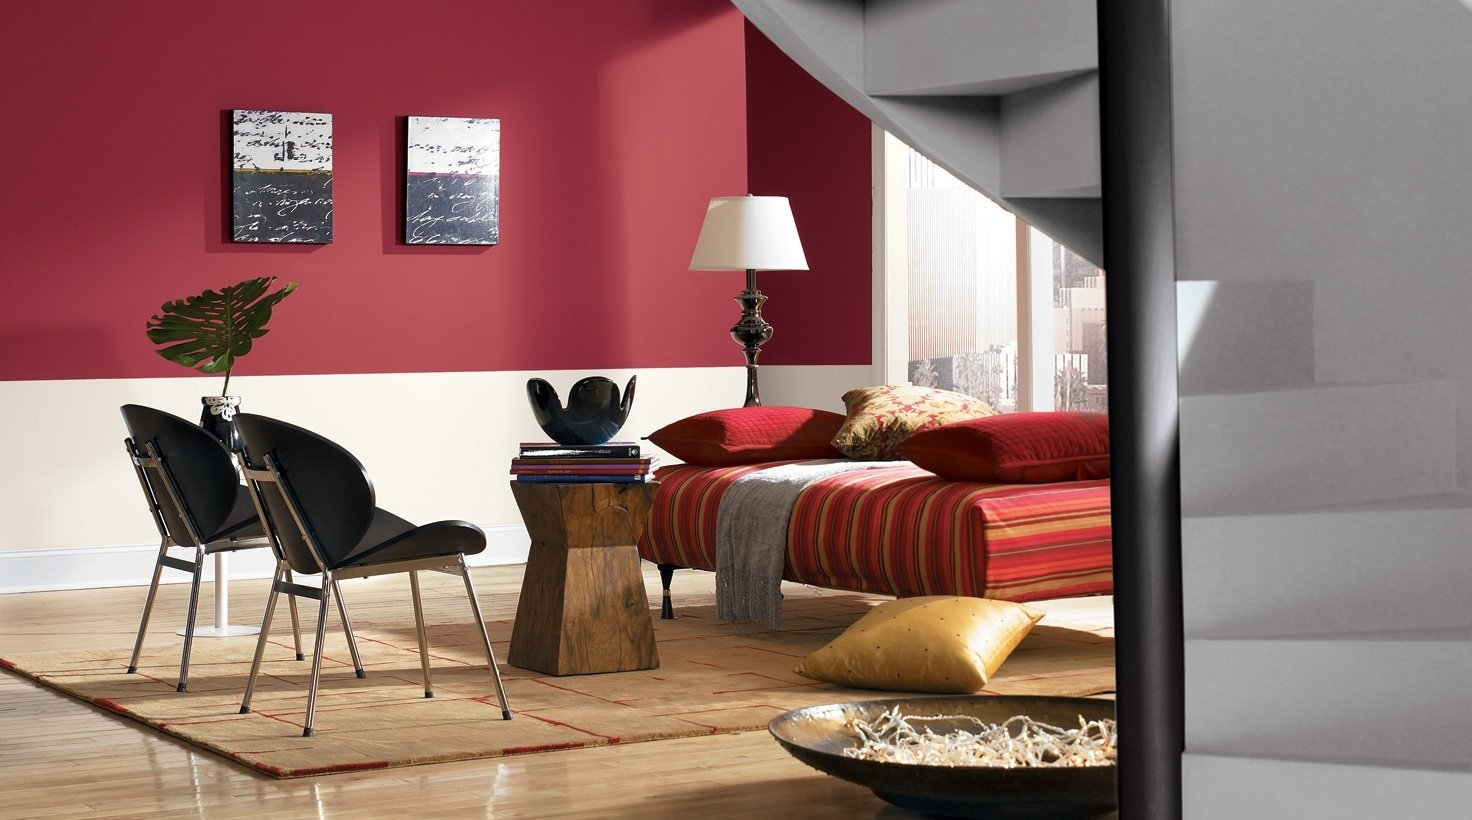 10 Spectacular Living Room Paint Color Ideas living room paint color ideas inspiration gallery sherwin williams 27 2020